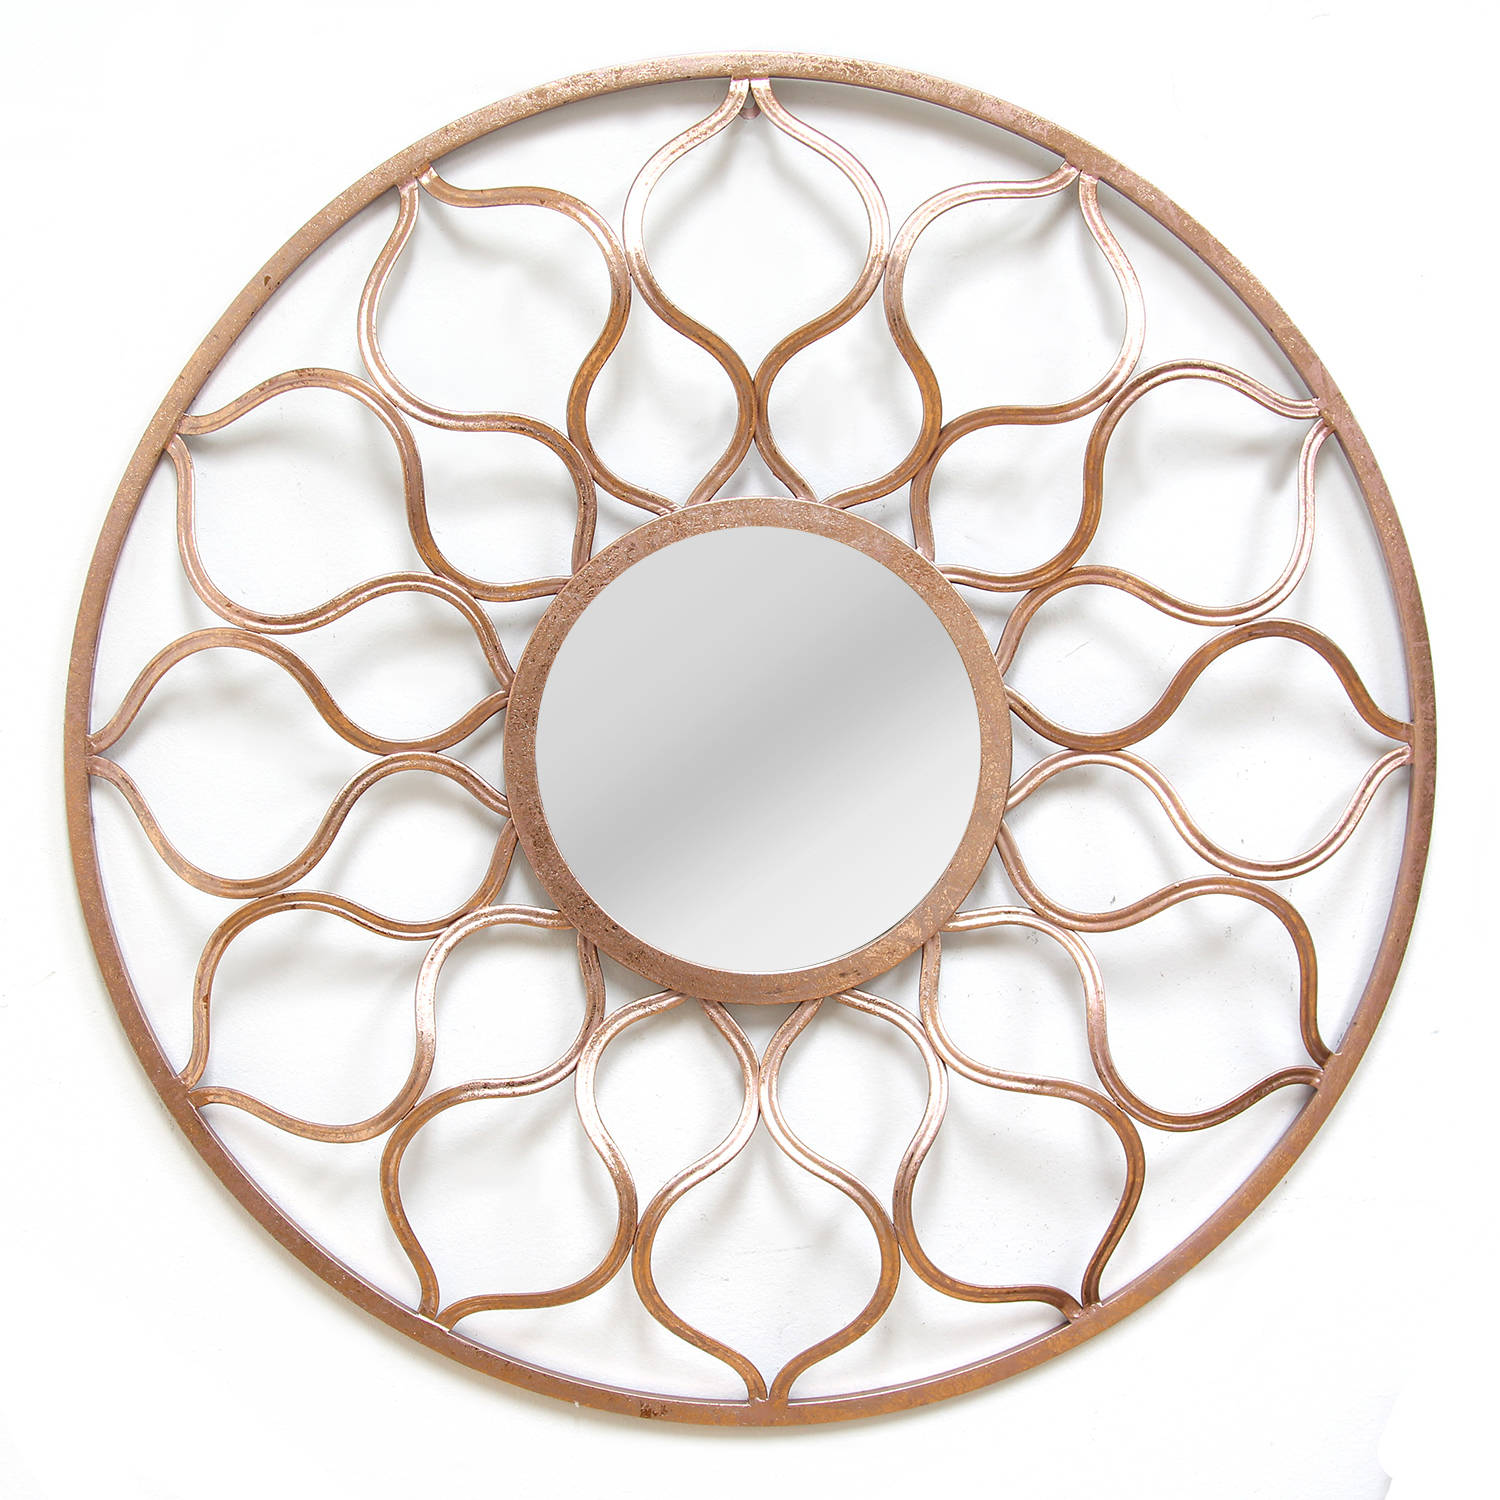 Stratton Home Decor Claudia Wall Mirror